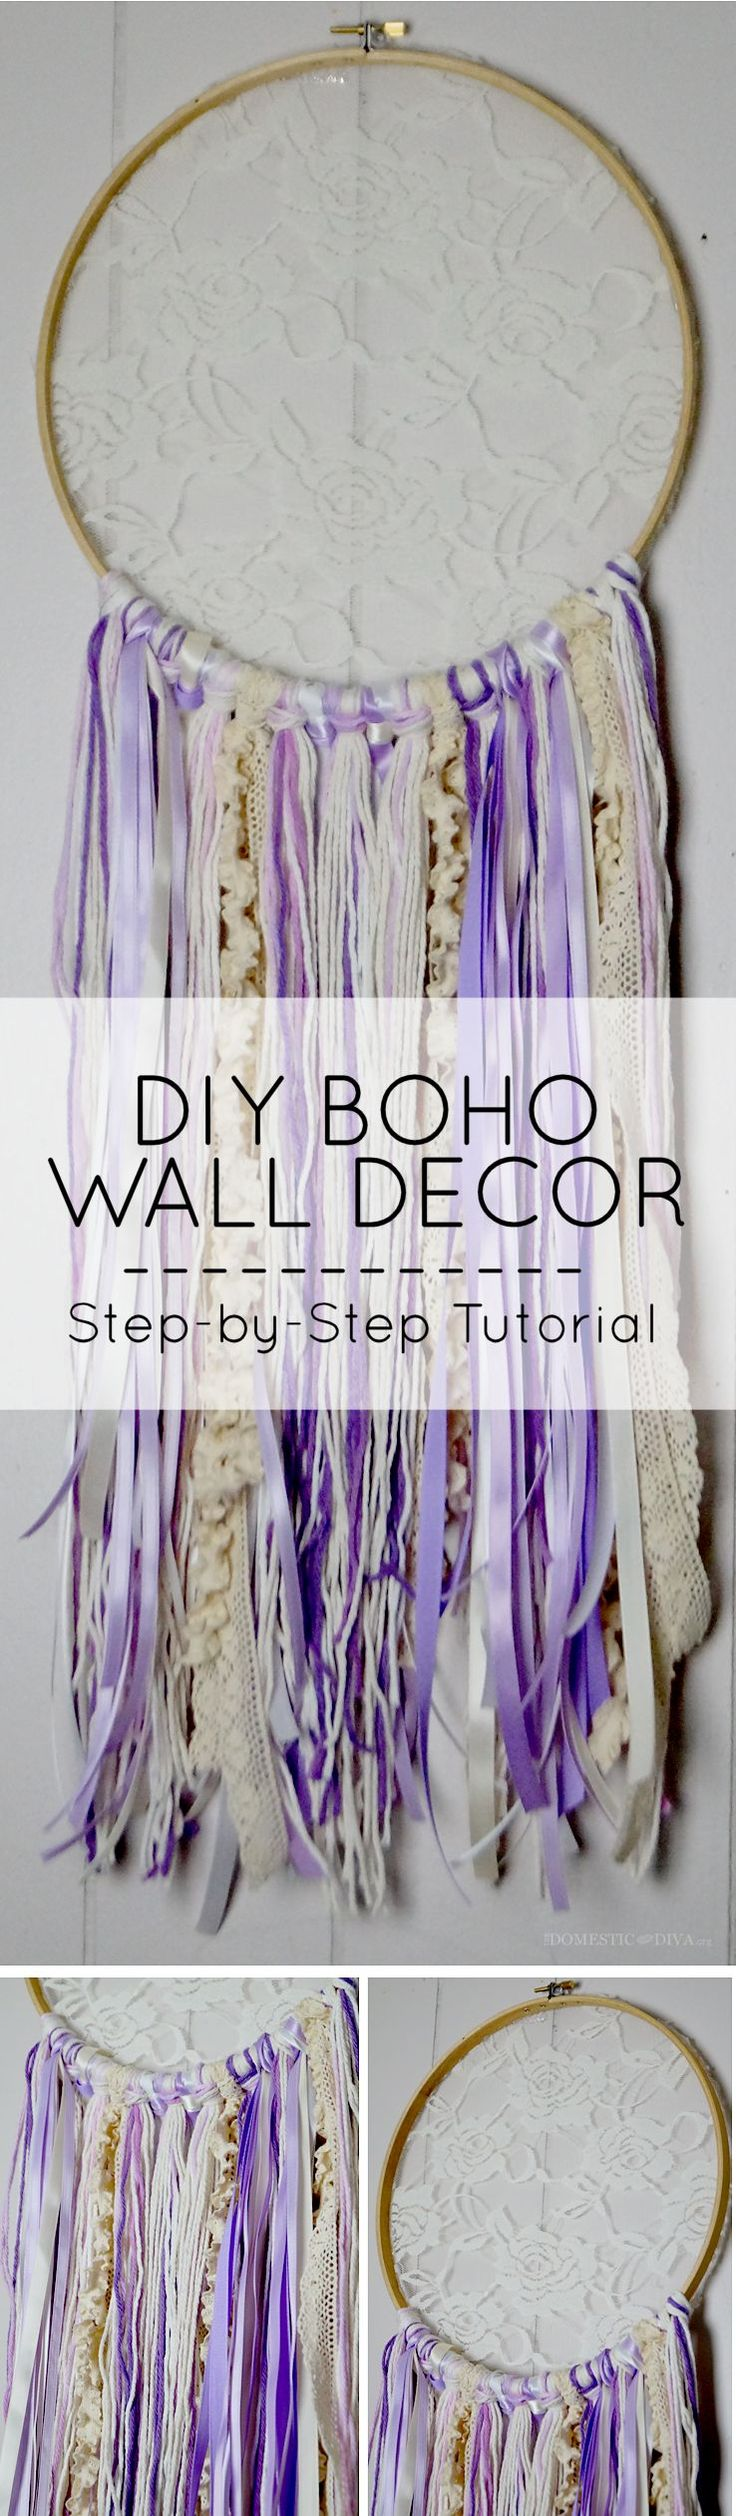 DIY Boho Wall Decor for Your Home: Dream Catcher Step-by-Step Tutorial